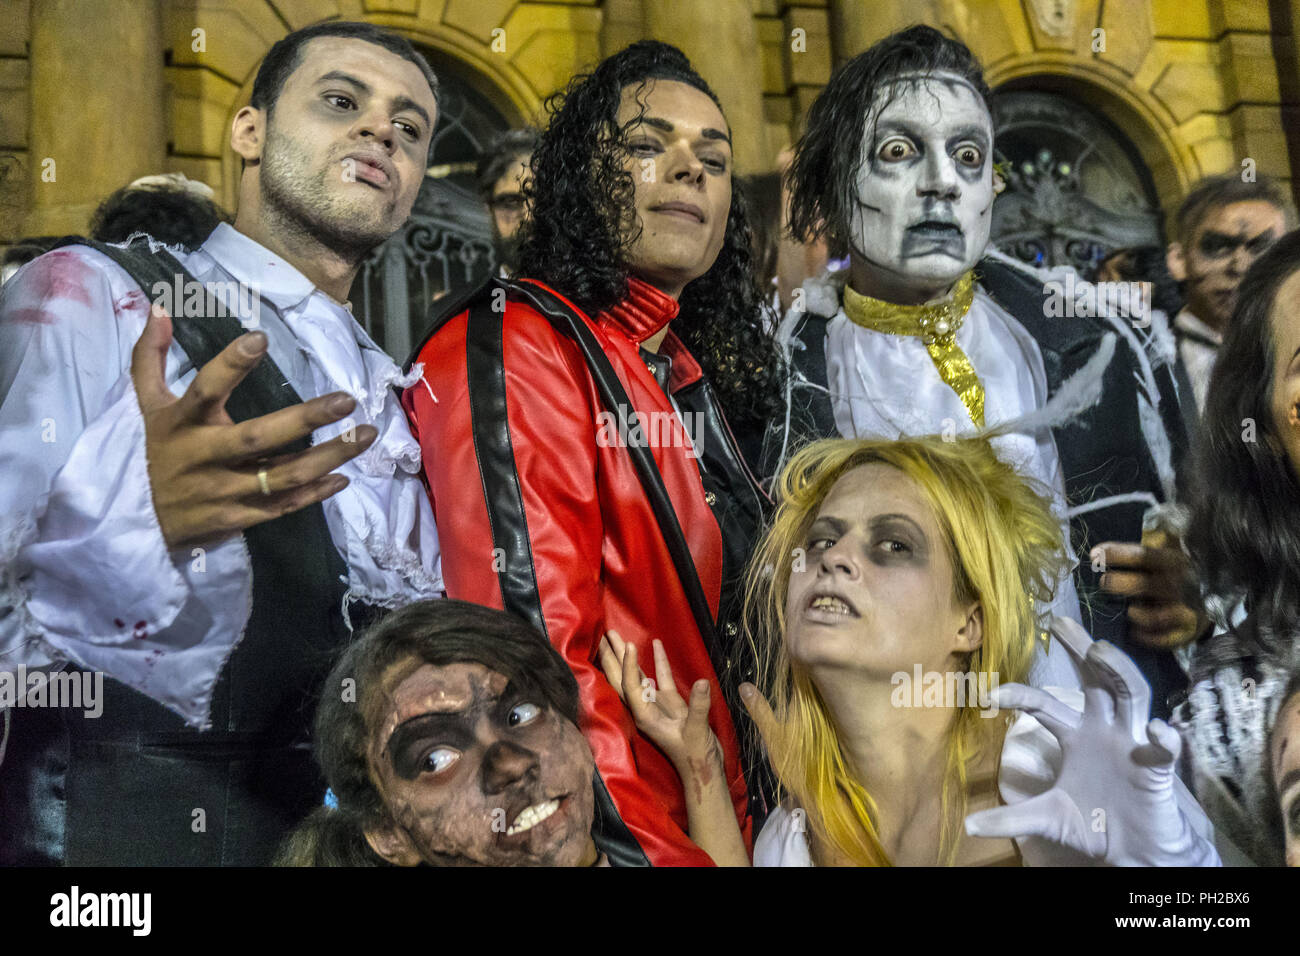 Sao Paulo, Brazil. 29th Aug 2018. HOMAGE MICHAEL JACKSON: Fans of singer Michael Jackson flashmob on the steps of the Municipal Theater in Sao Paulo dancing Thriller on the day that the singer would turn 60 if he were alive. Credit: Cris Faga/ZUMA Wire/Alamy Live News - Stock Image